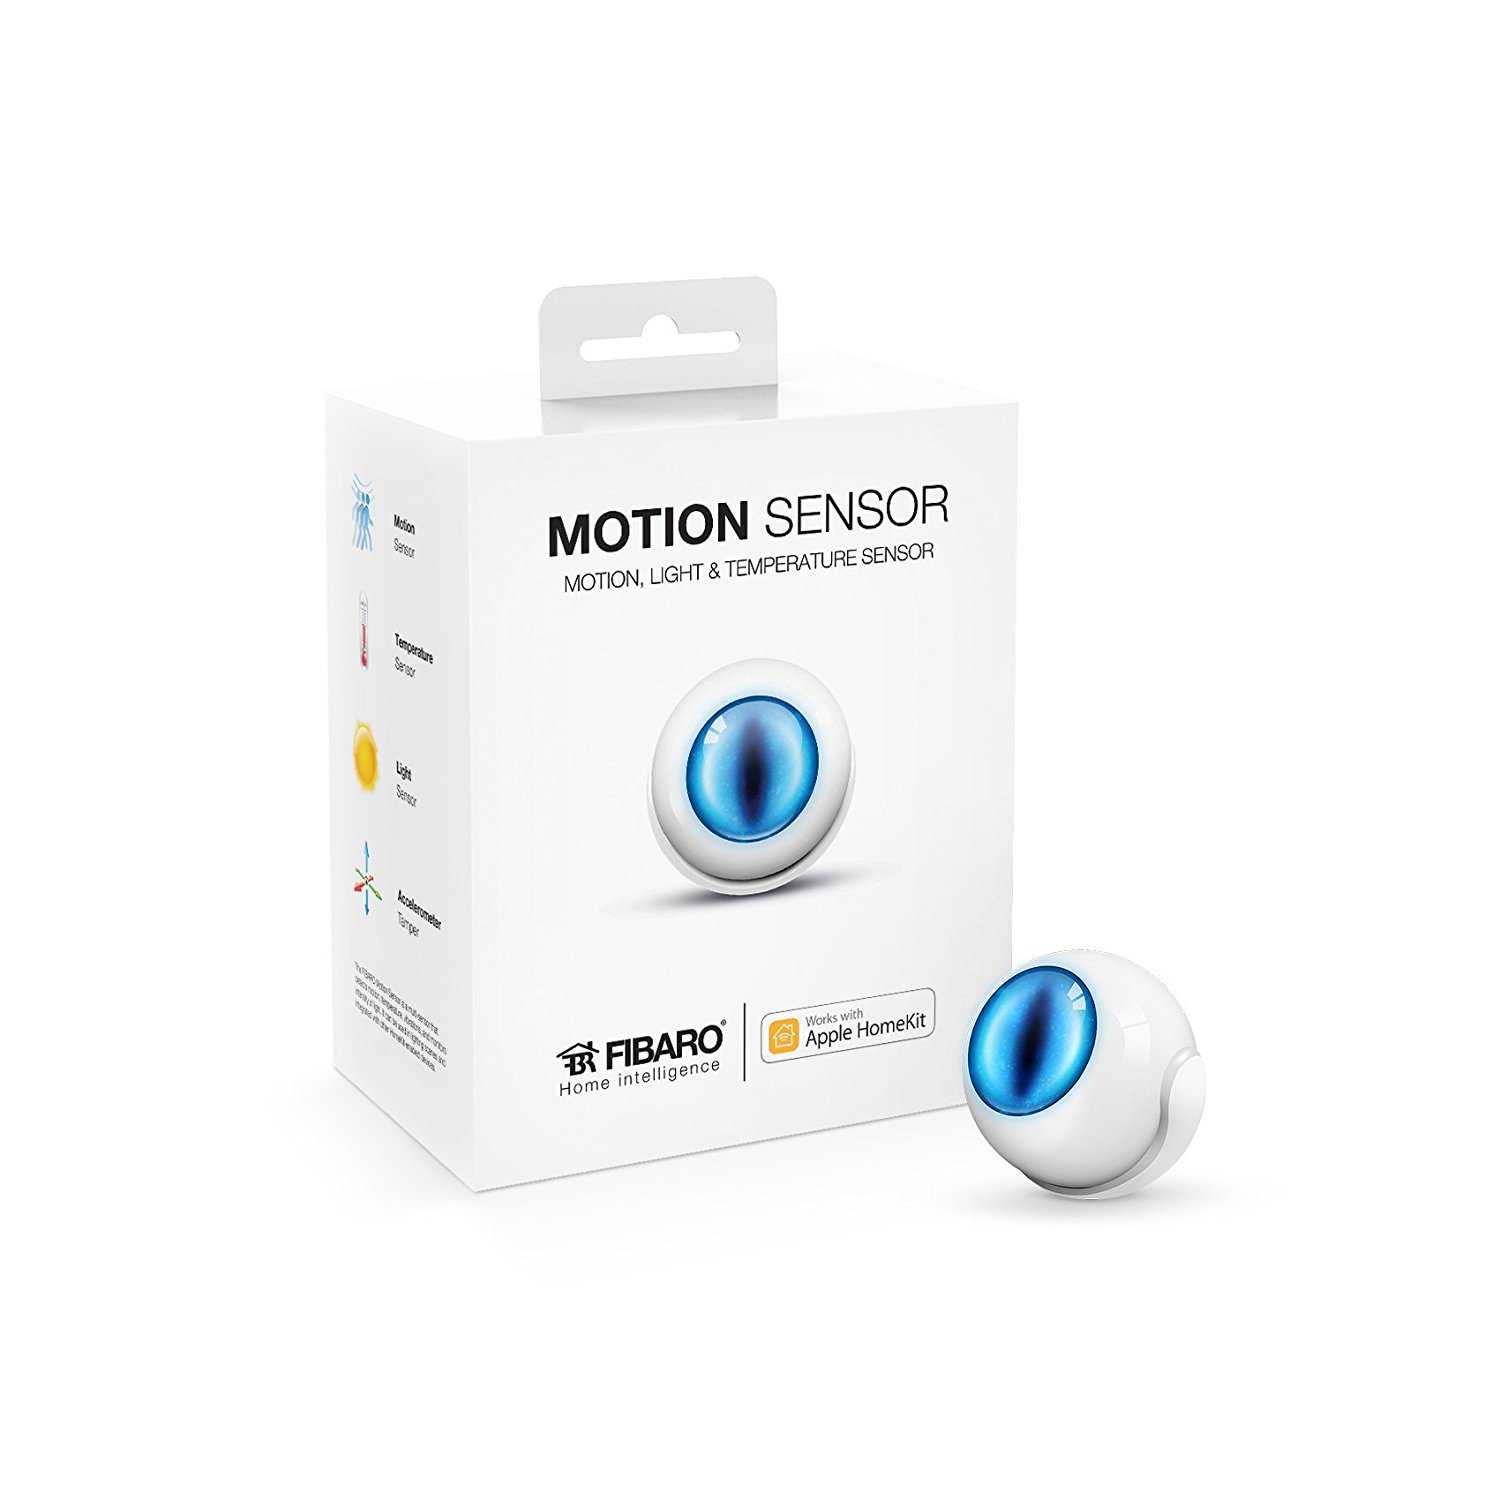 Camera Exterieur Homekit Détecteur De Mouvement Homekit Apple Eve Motion - Homekit